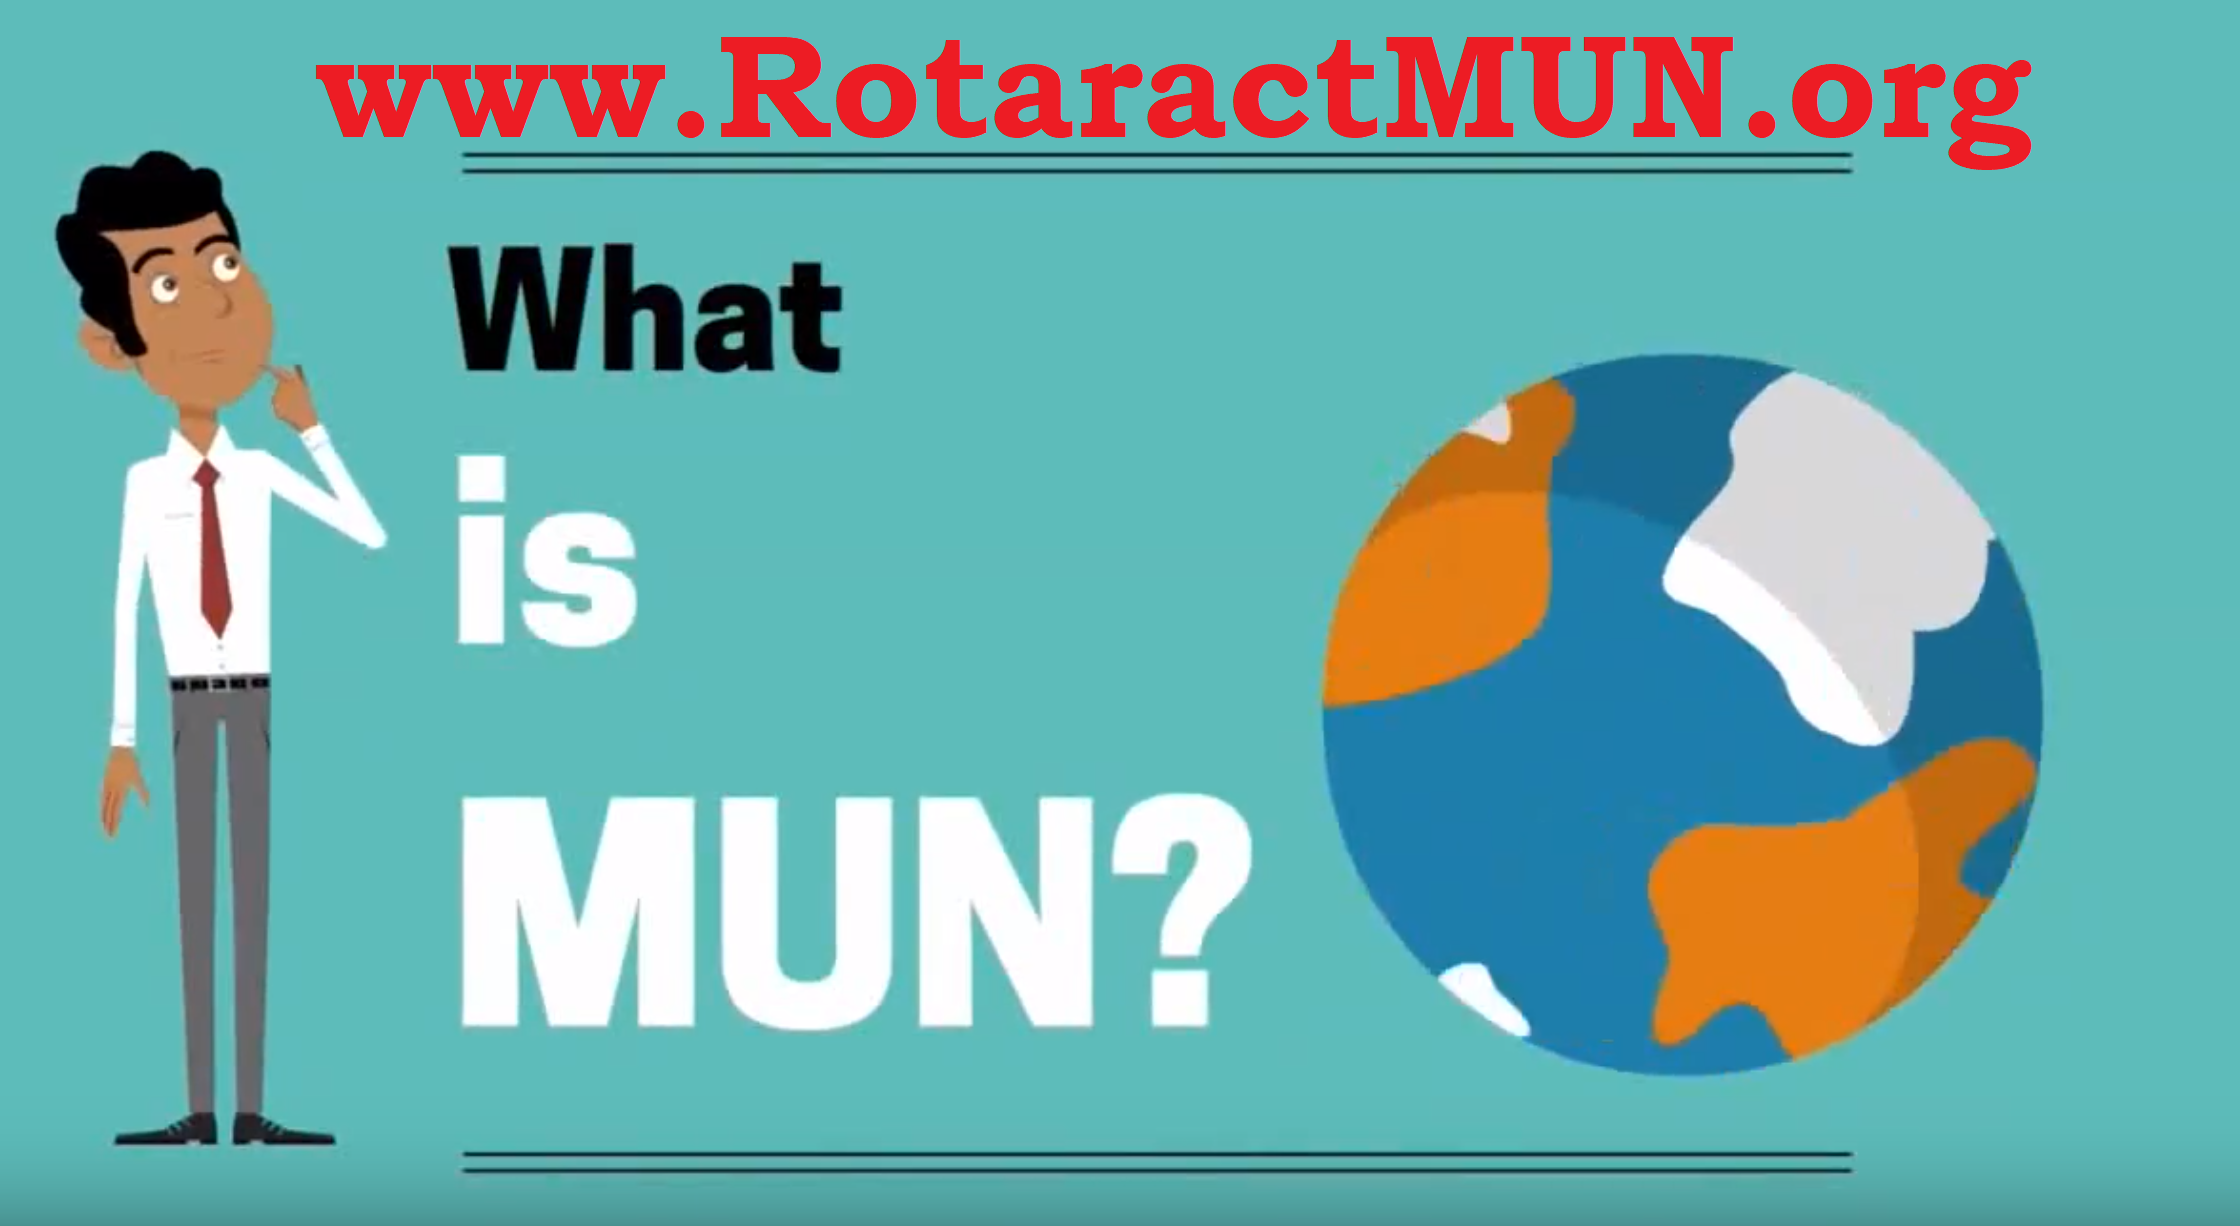 rotaract model united nations